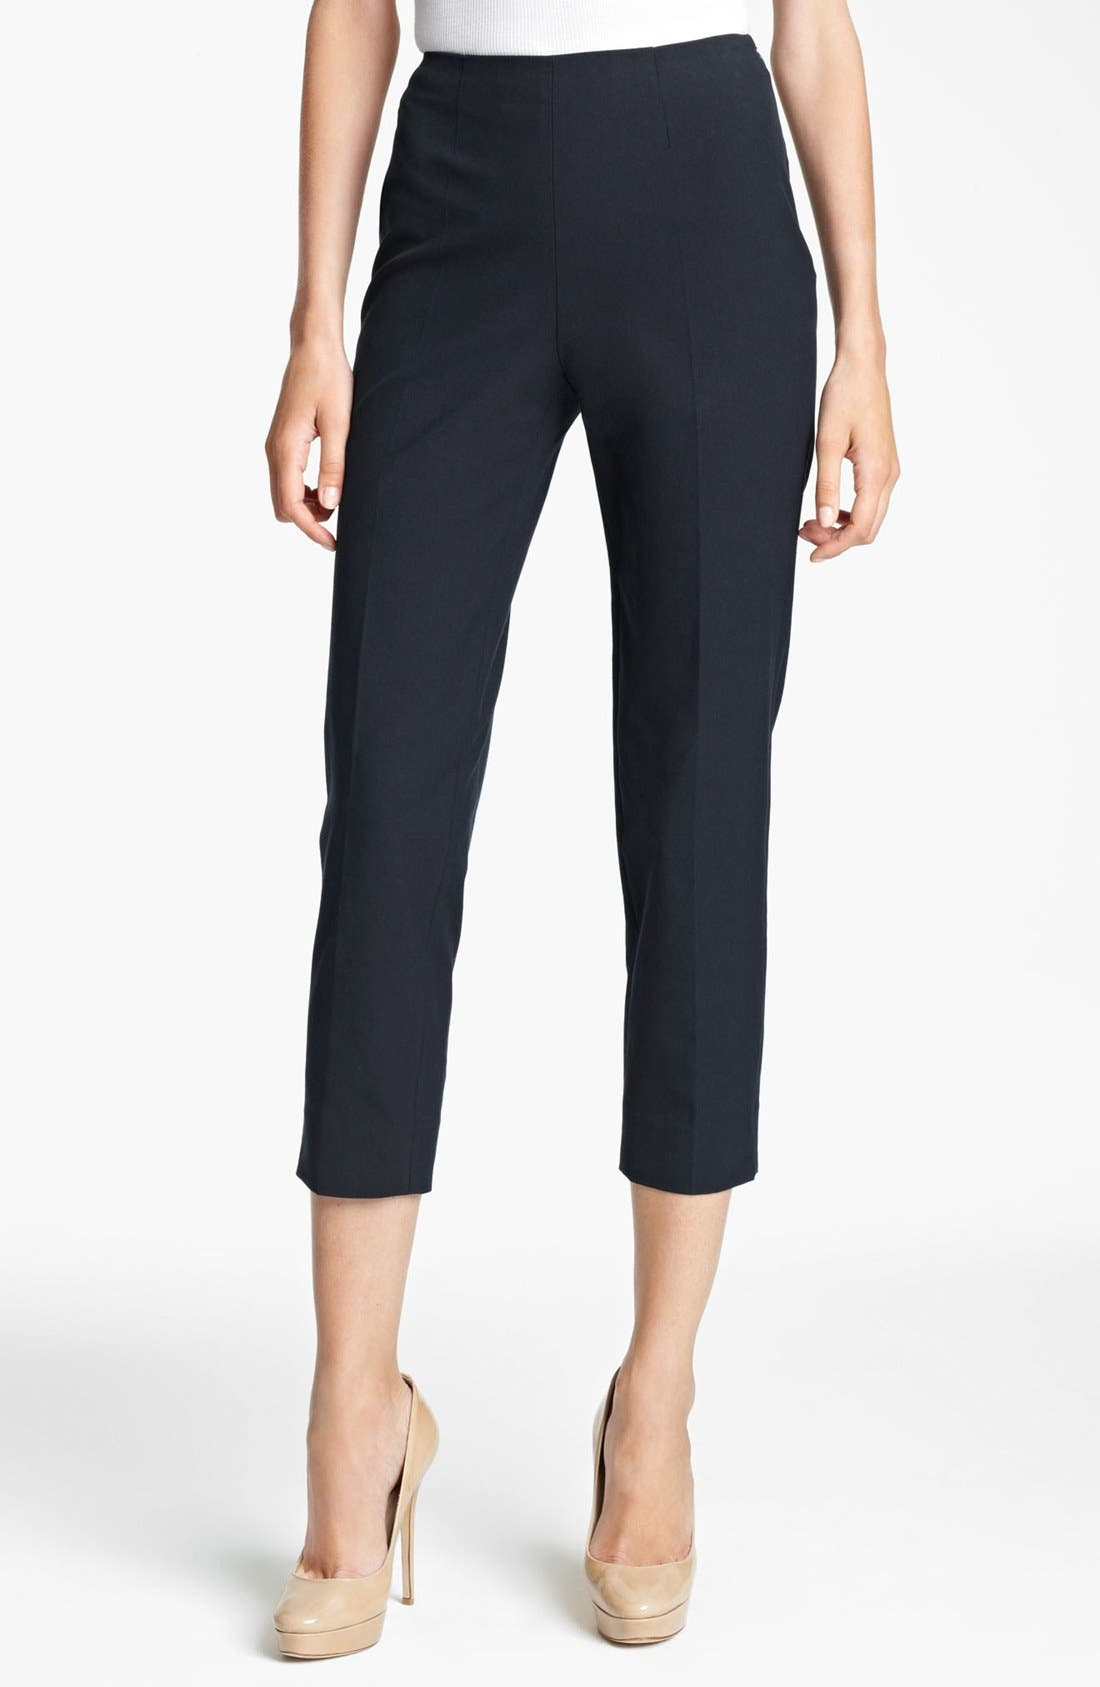 Alternate Image 1 Selected - Piazza Sempione 'Audrey' Stretch Wool Crop Pants